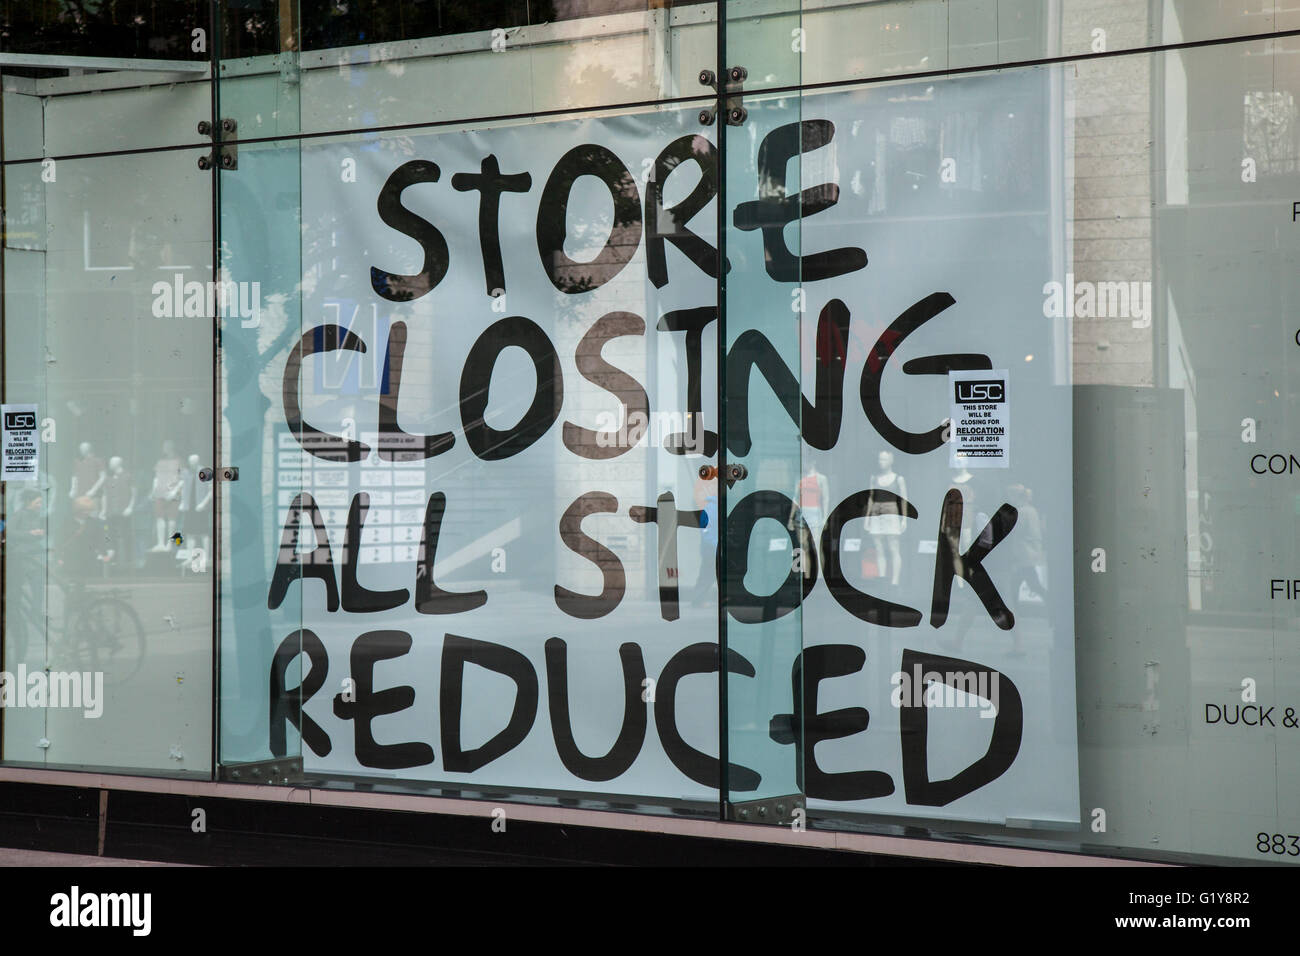 USC Store closing down sale, shop front all stock reduced, Liverpool, Merseyside, UK Store Twenty One, Forever 21, - Stock Image